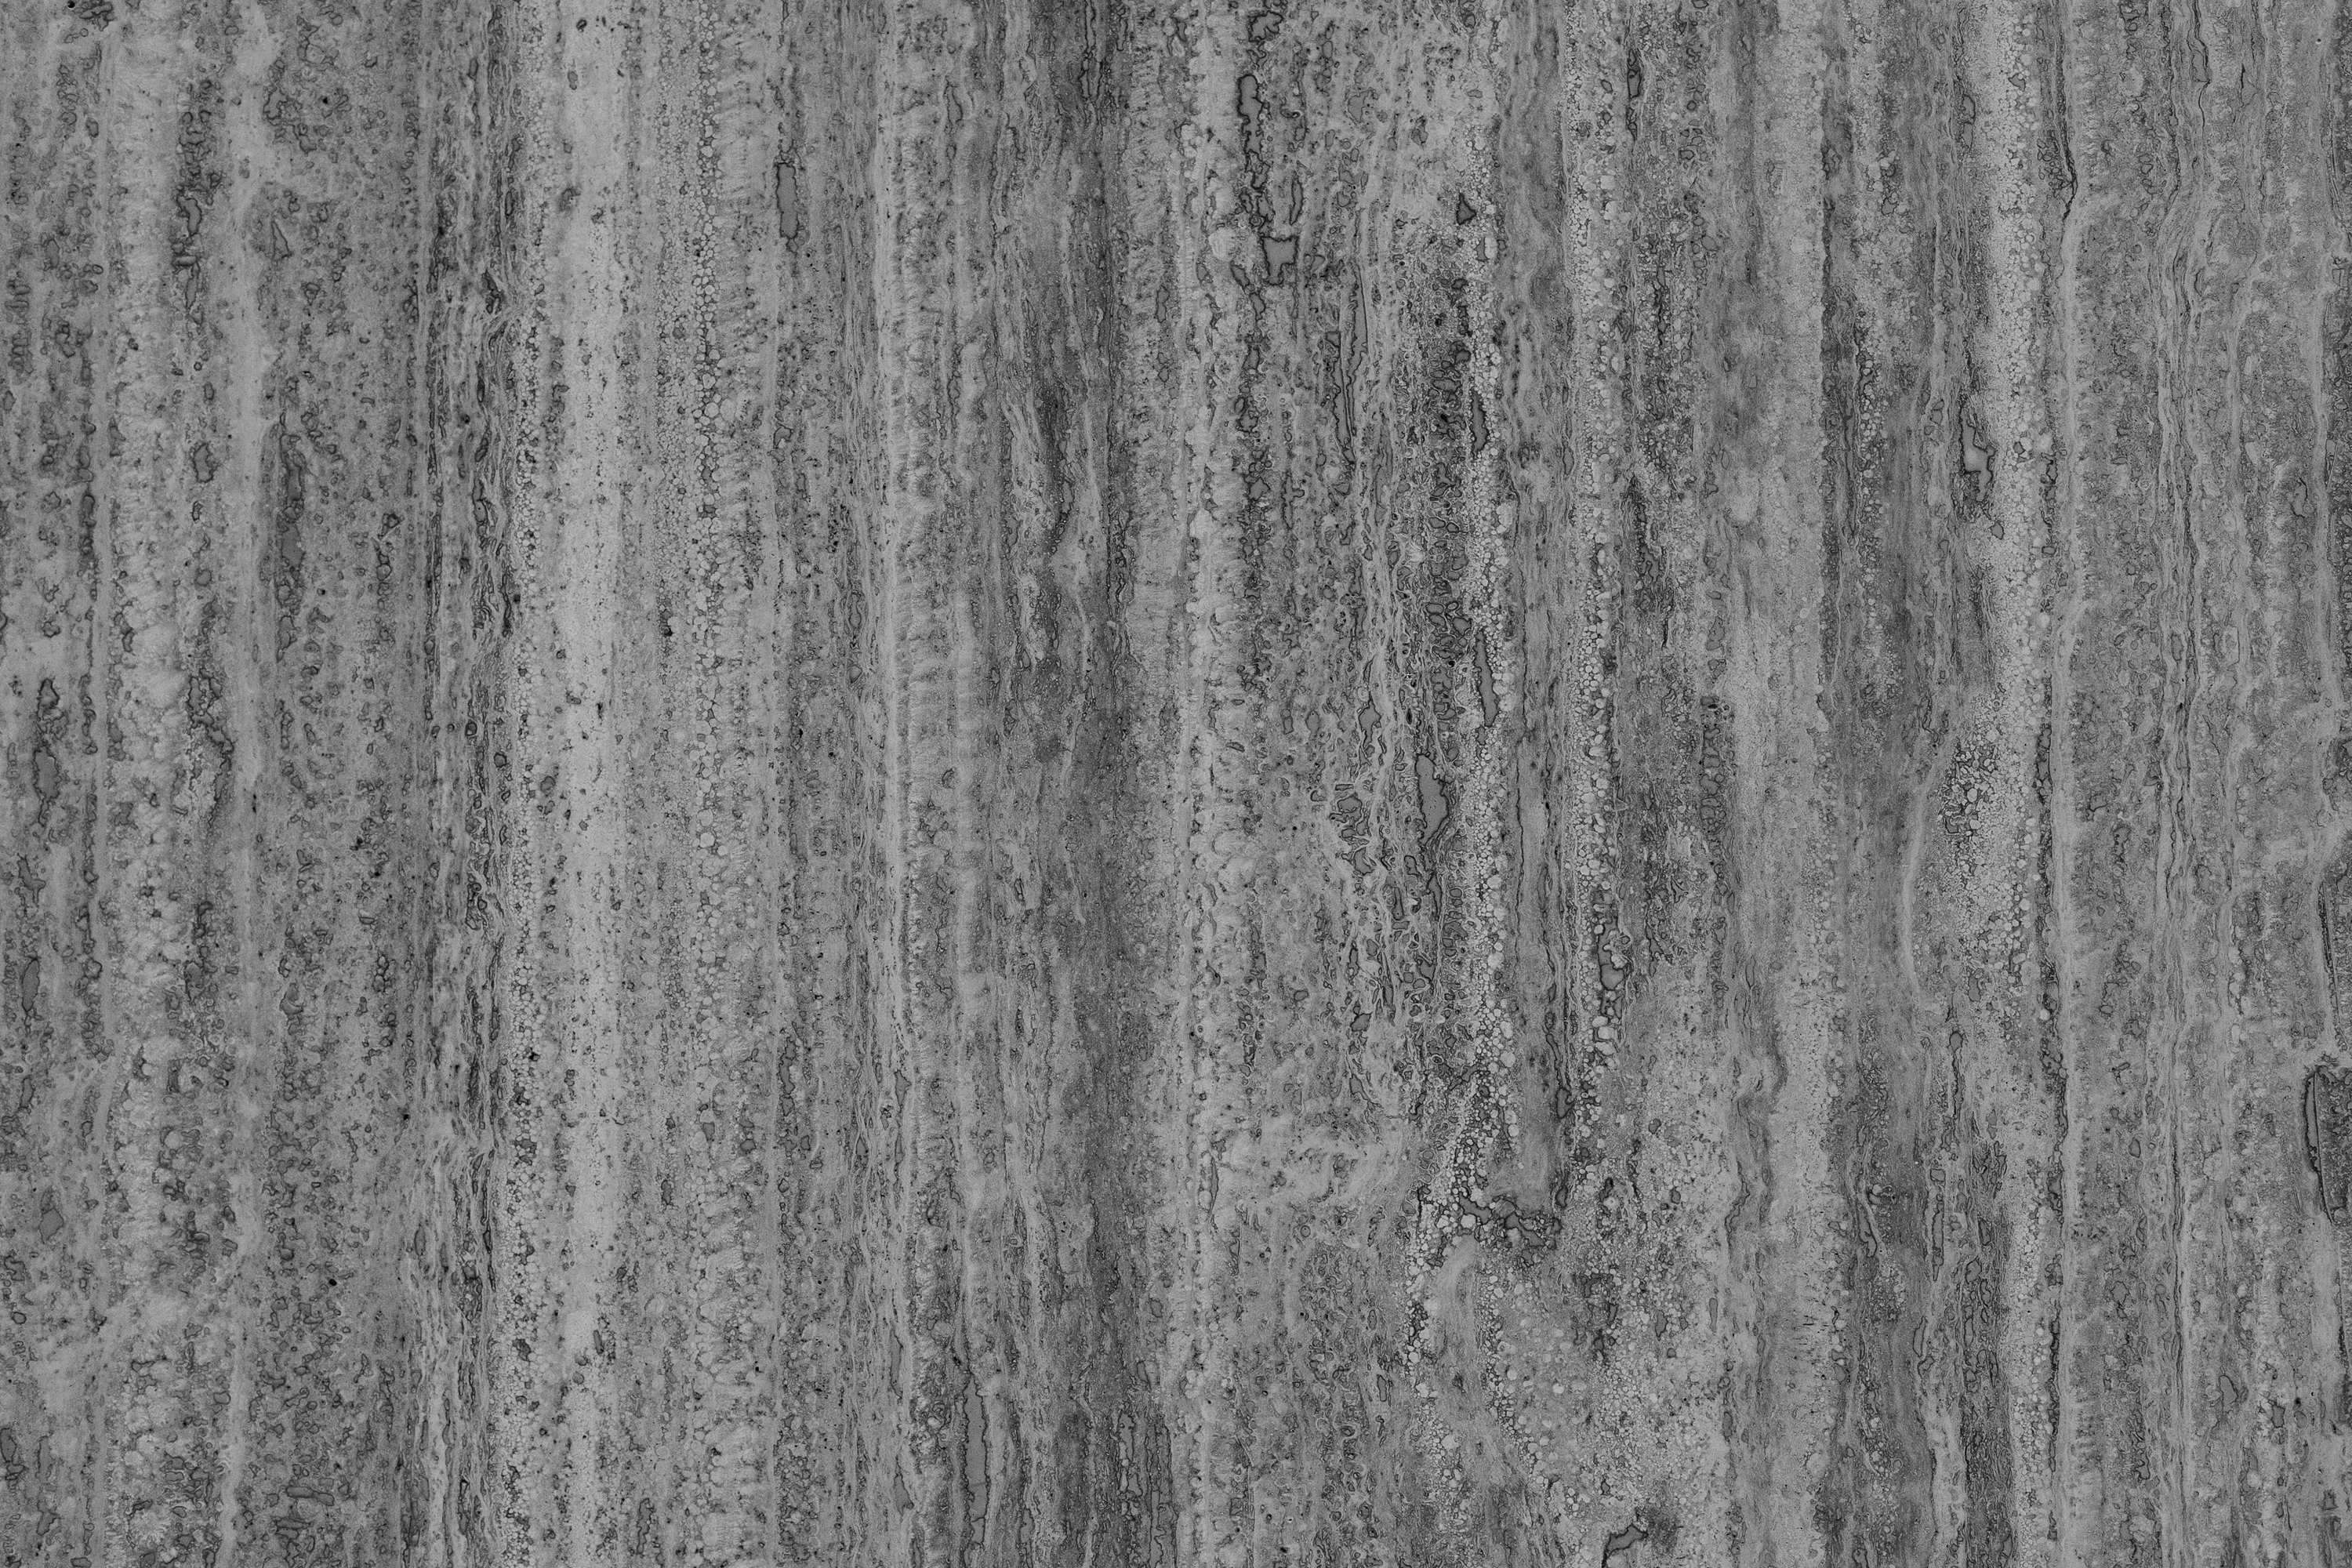 Grunge Flat Cutted Stone Texture